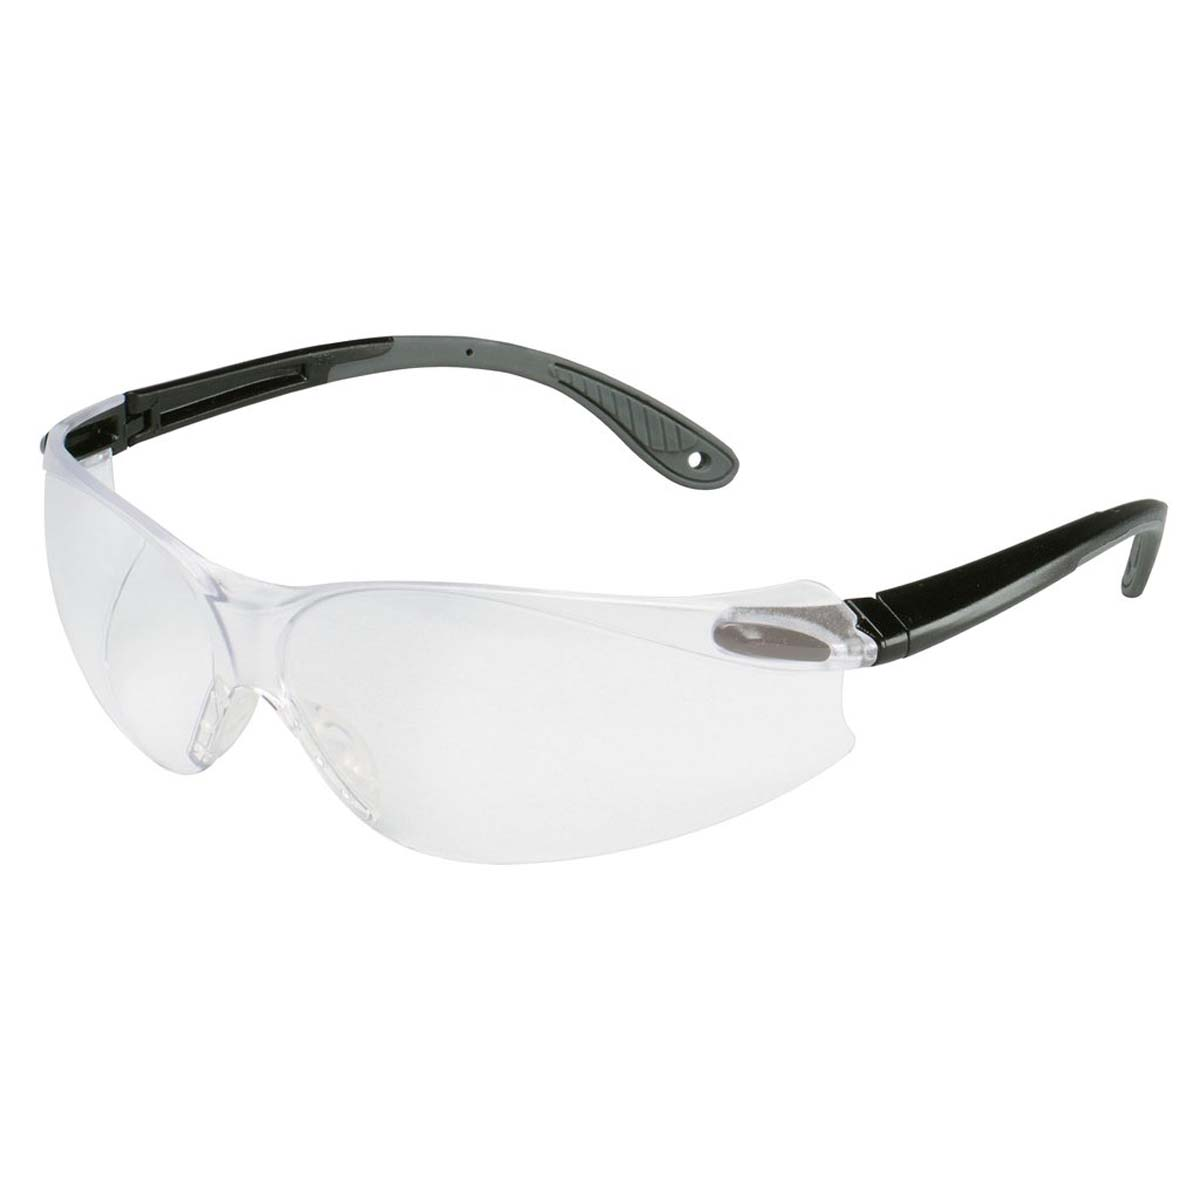 "3Mâ""¢ Virtuaâ""¢ V4 Protective Eyewear 11670-00000-20 Clear HC Lens, Black/Gray Temple"